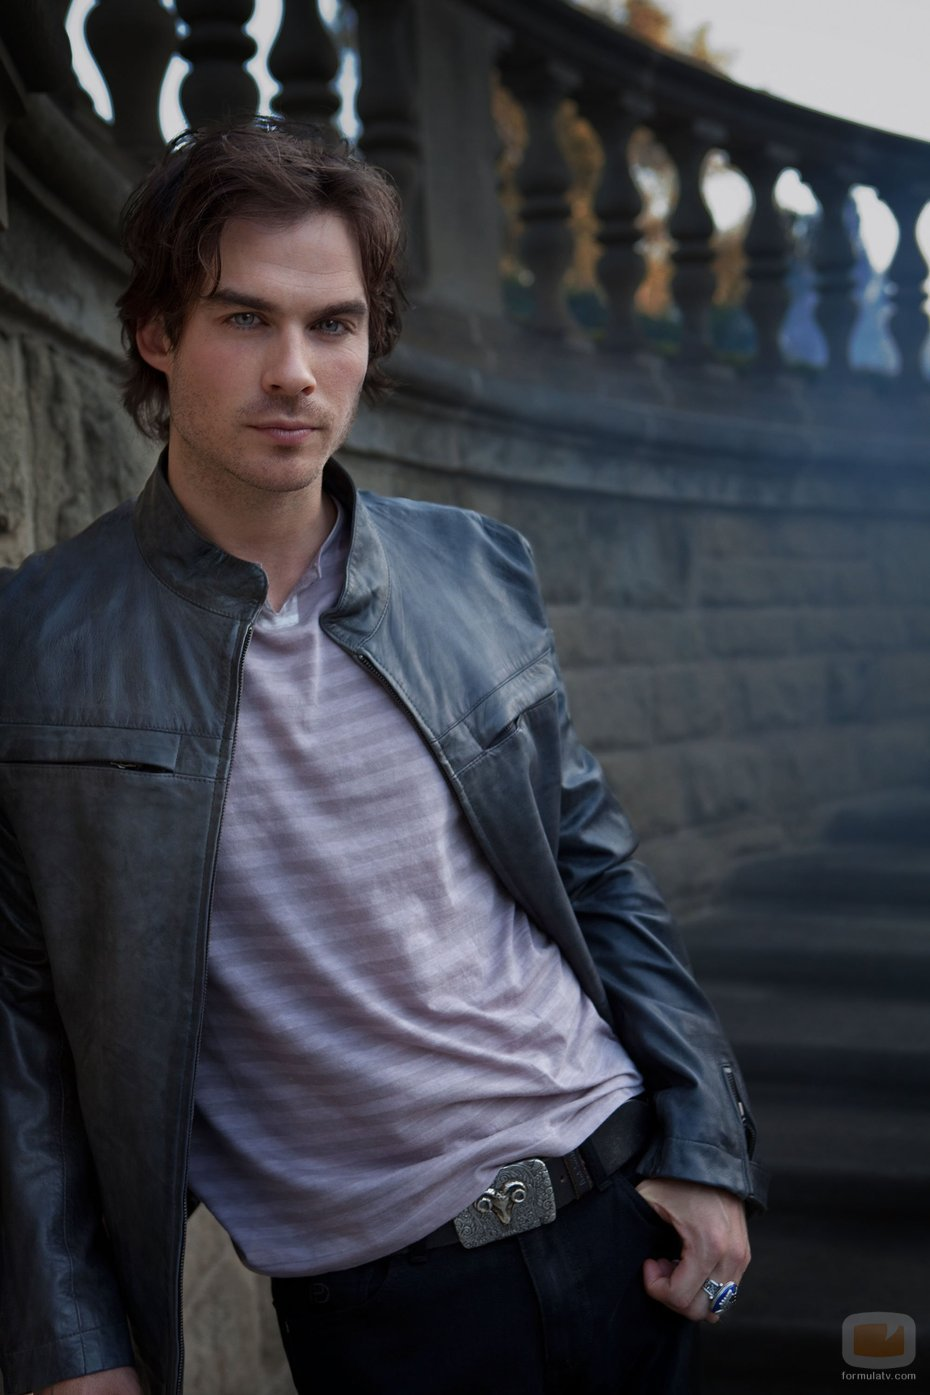 Damon Salvatore (novel)